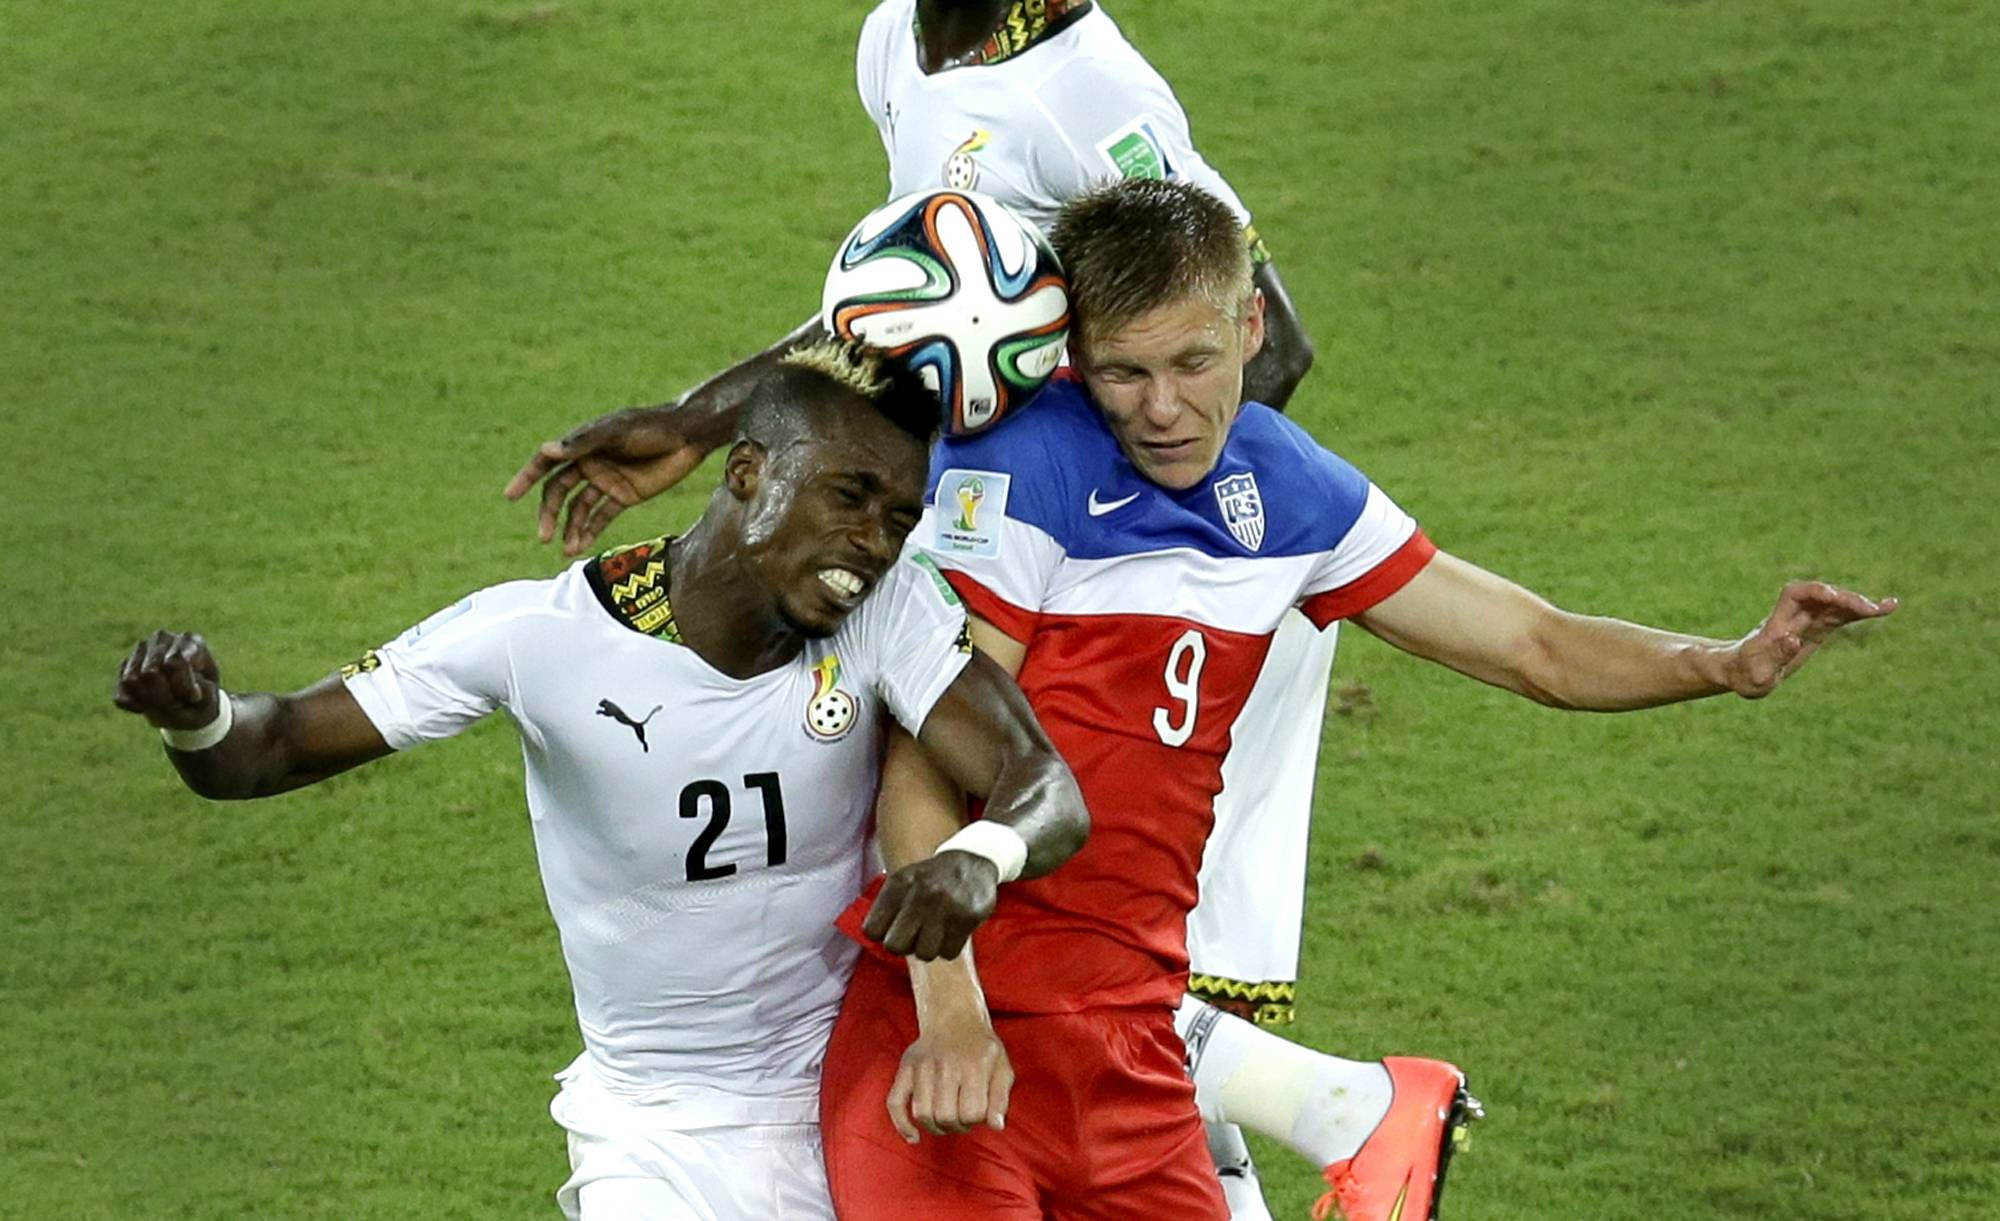 Ghana's John Boye, left, and United States' Aron Johannsson go for a header during the group G World Cup soccer match between Ghana and the United States at the Arena das Dunas in Natal, Brazil, Monday, June 16, 2014.